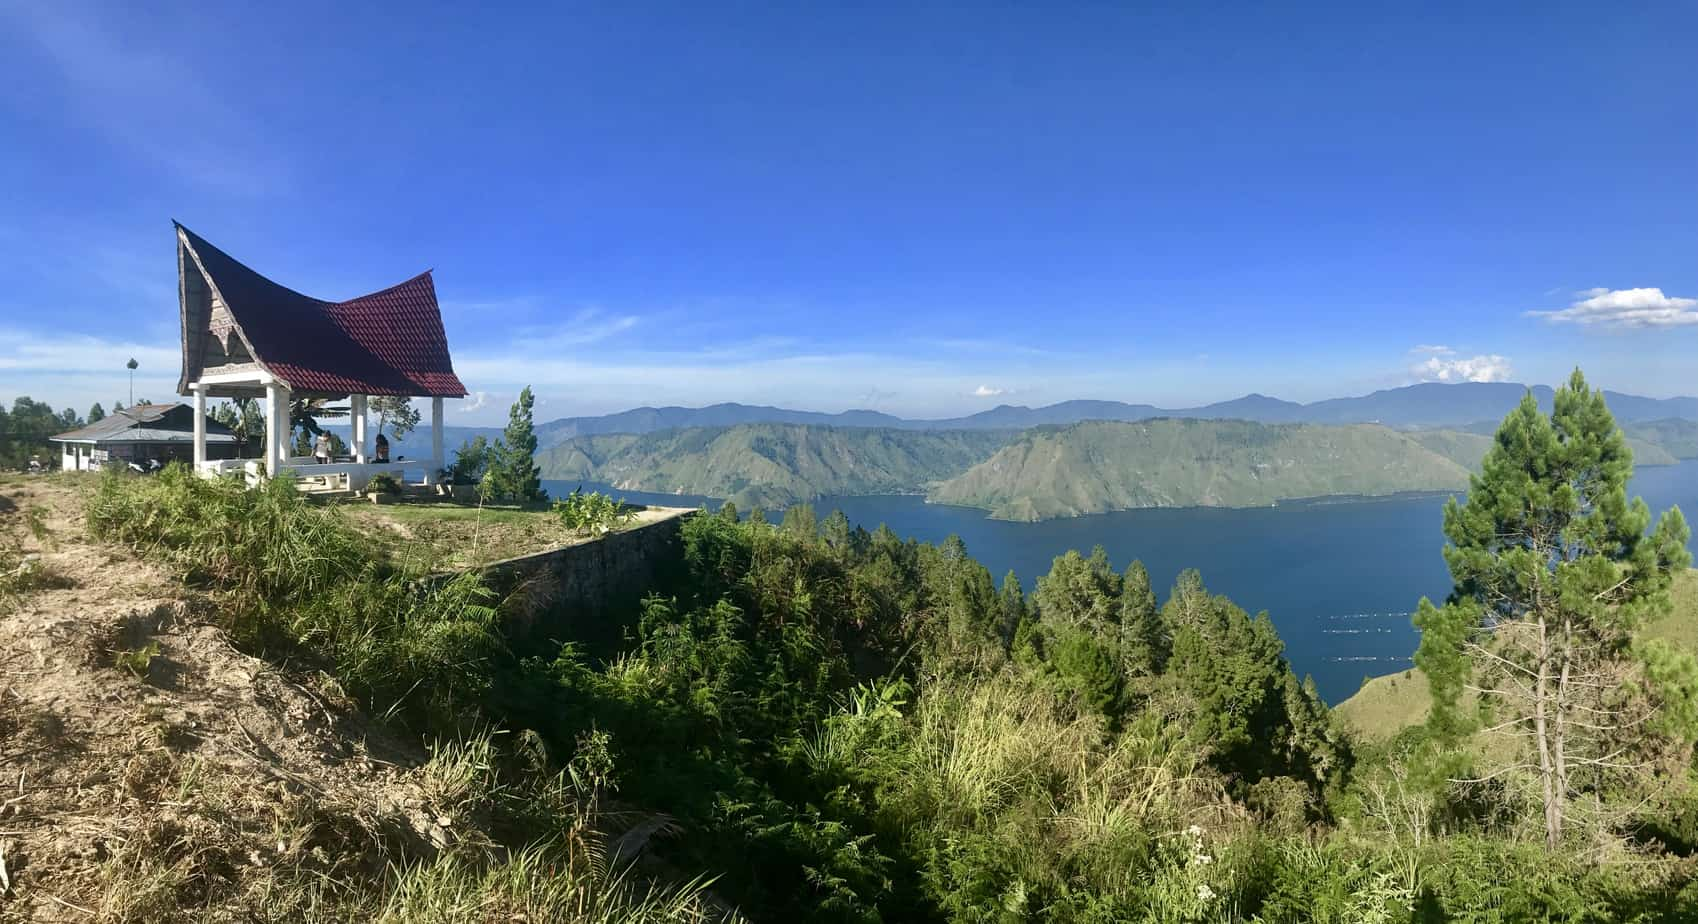 The beautiful Lake Toba, Sumatra, Indonesia